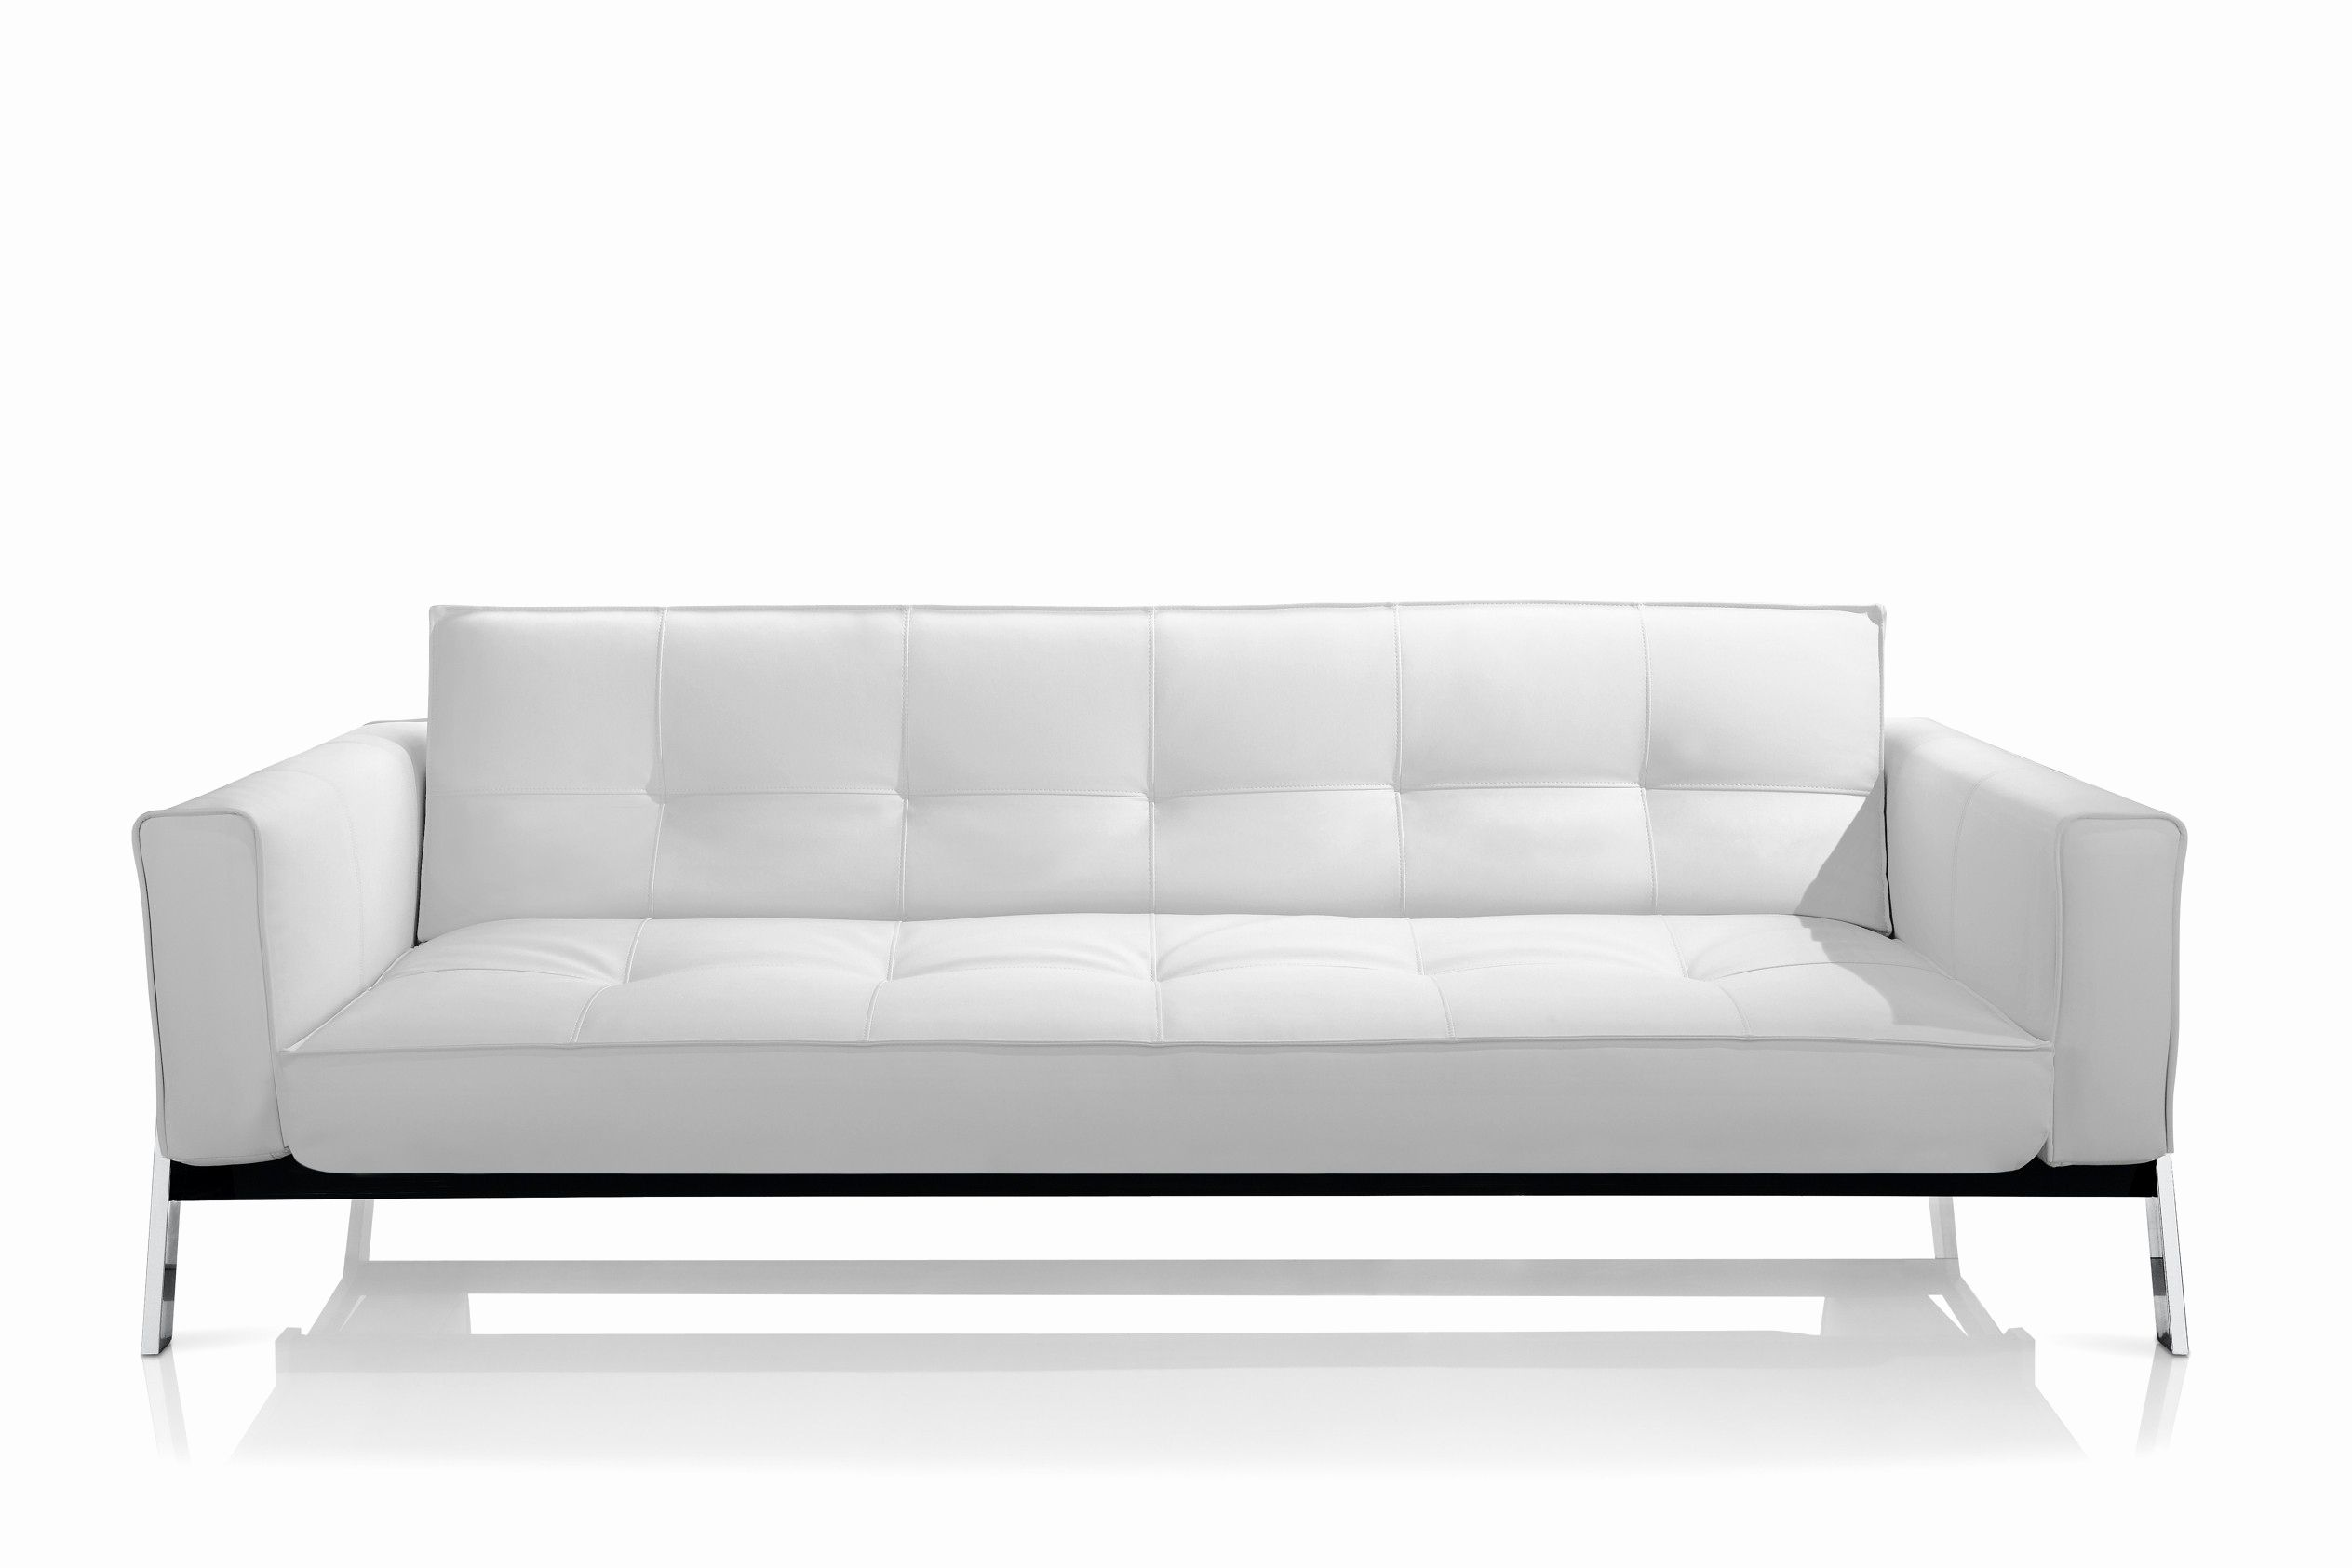 Awesome Contemporary Leather Sleeper sofa Shot Contemporary ...